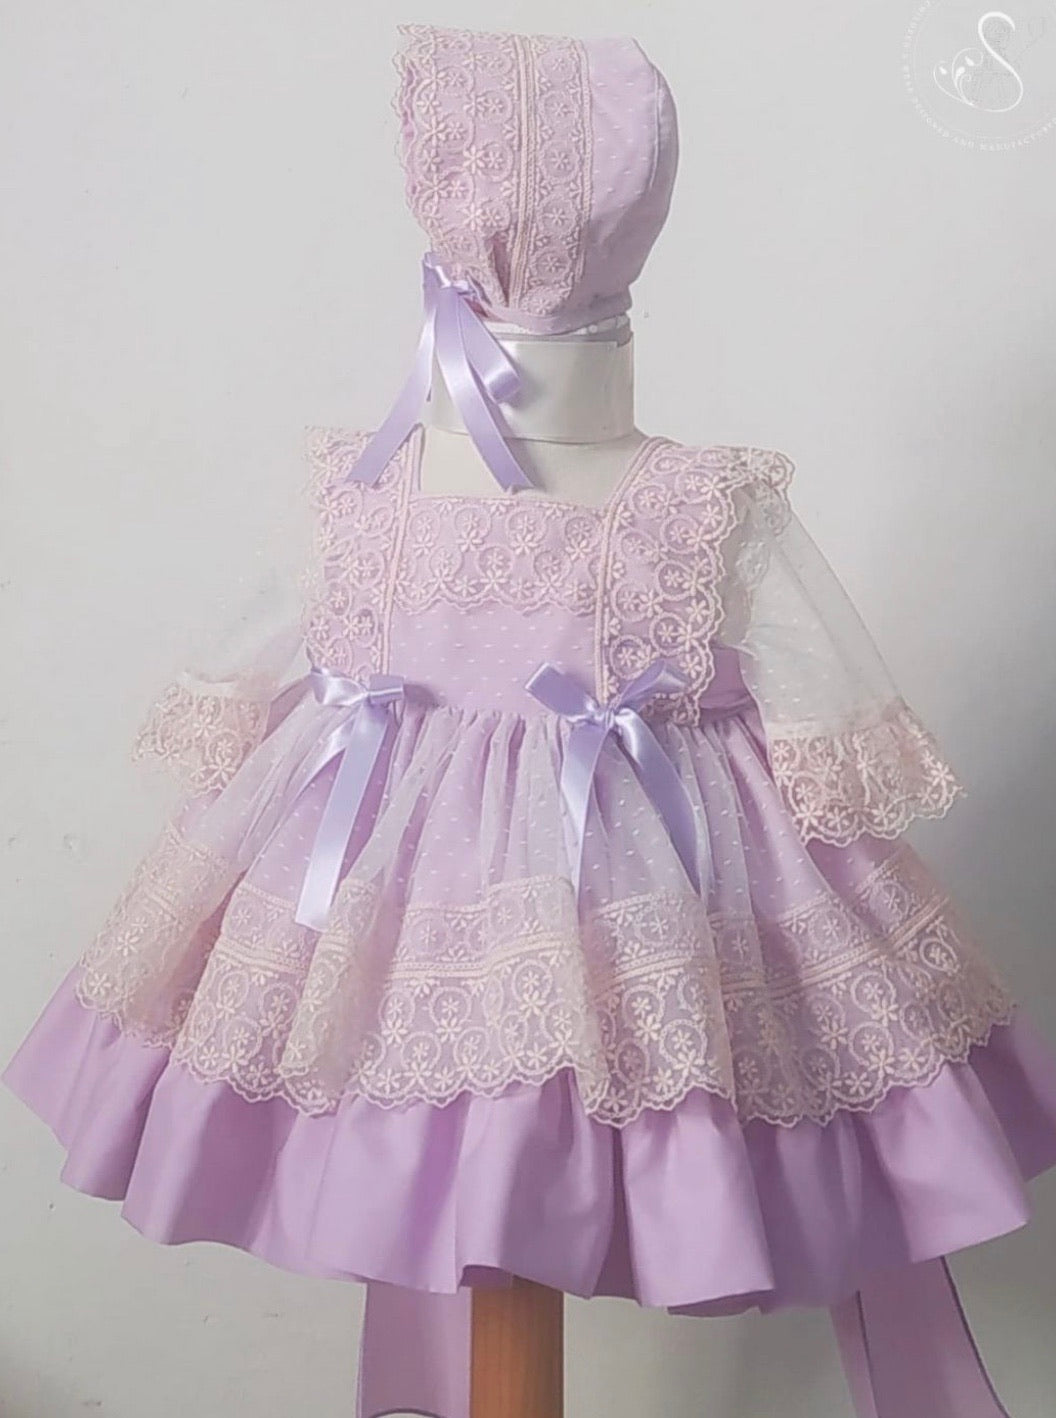 Lavender puffball dress